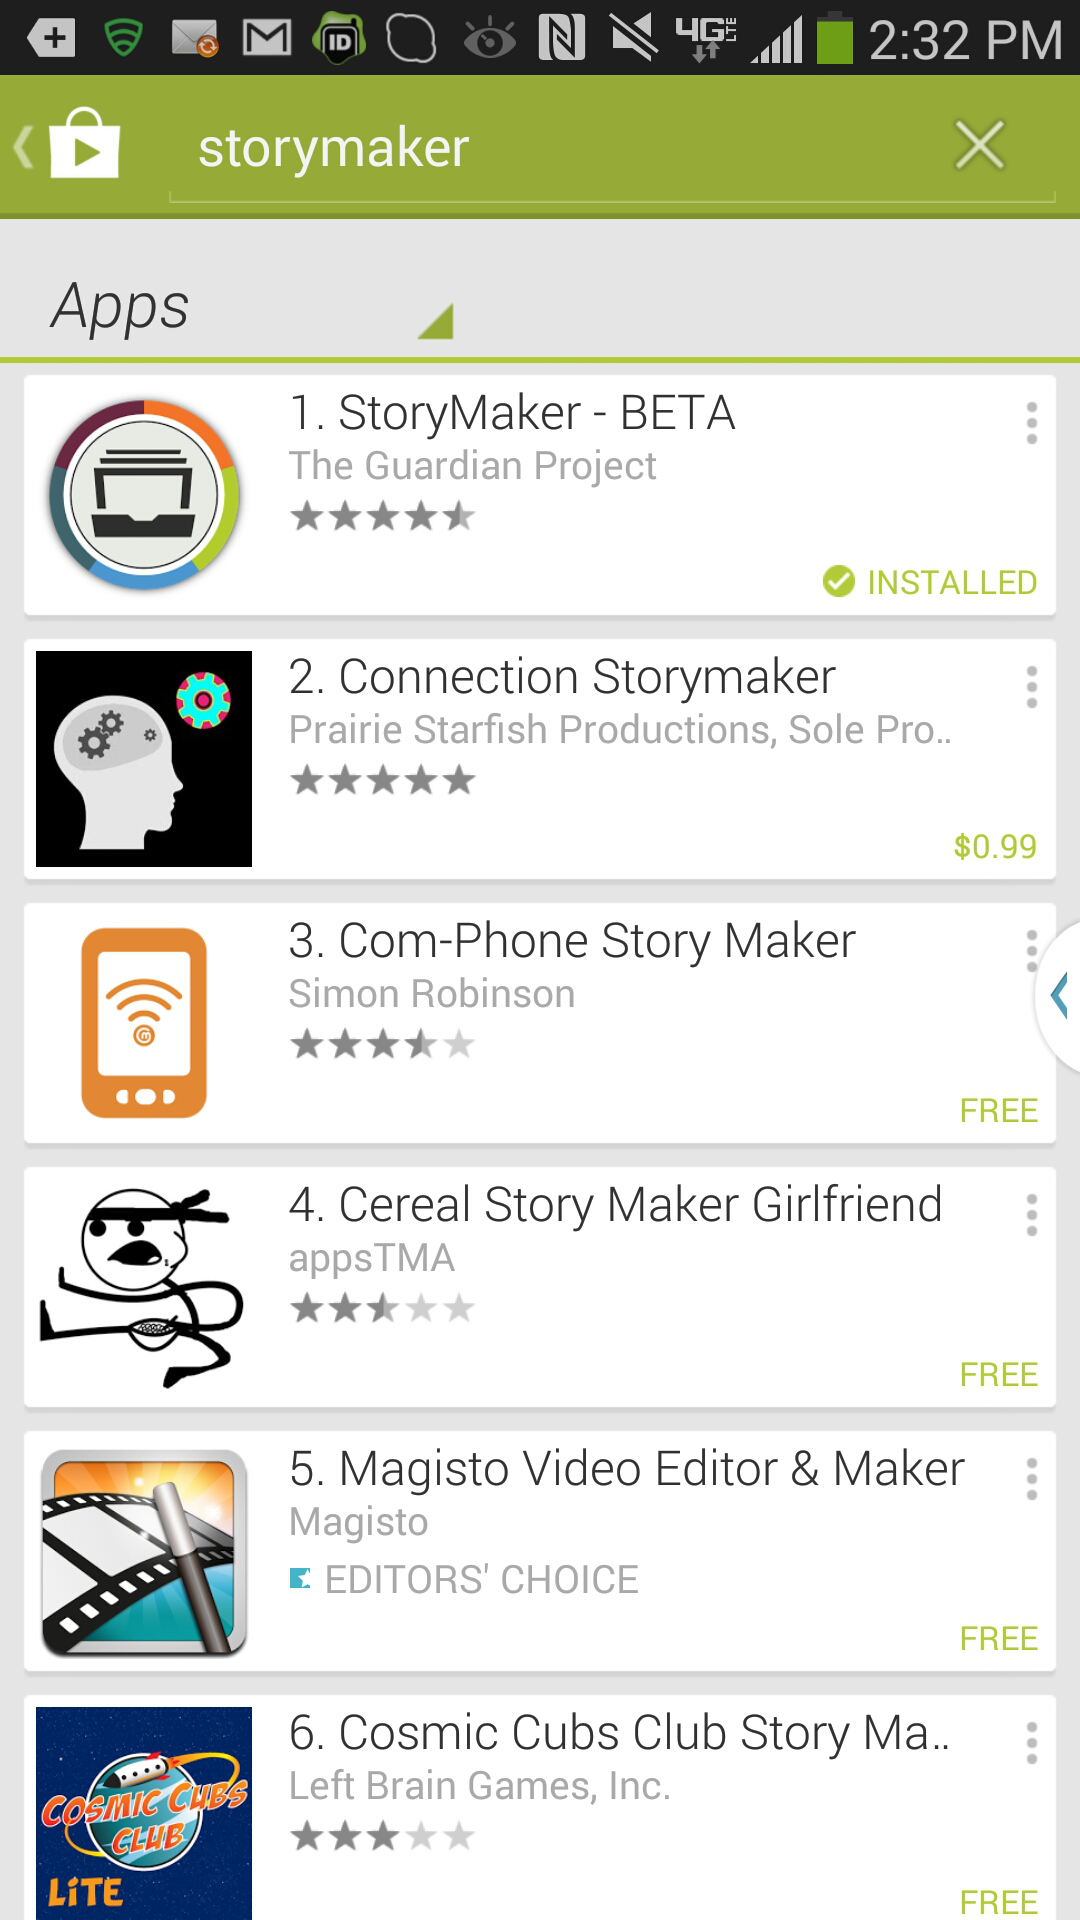 Hands-On: Using the StoryMaker App